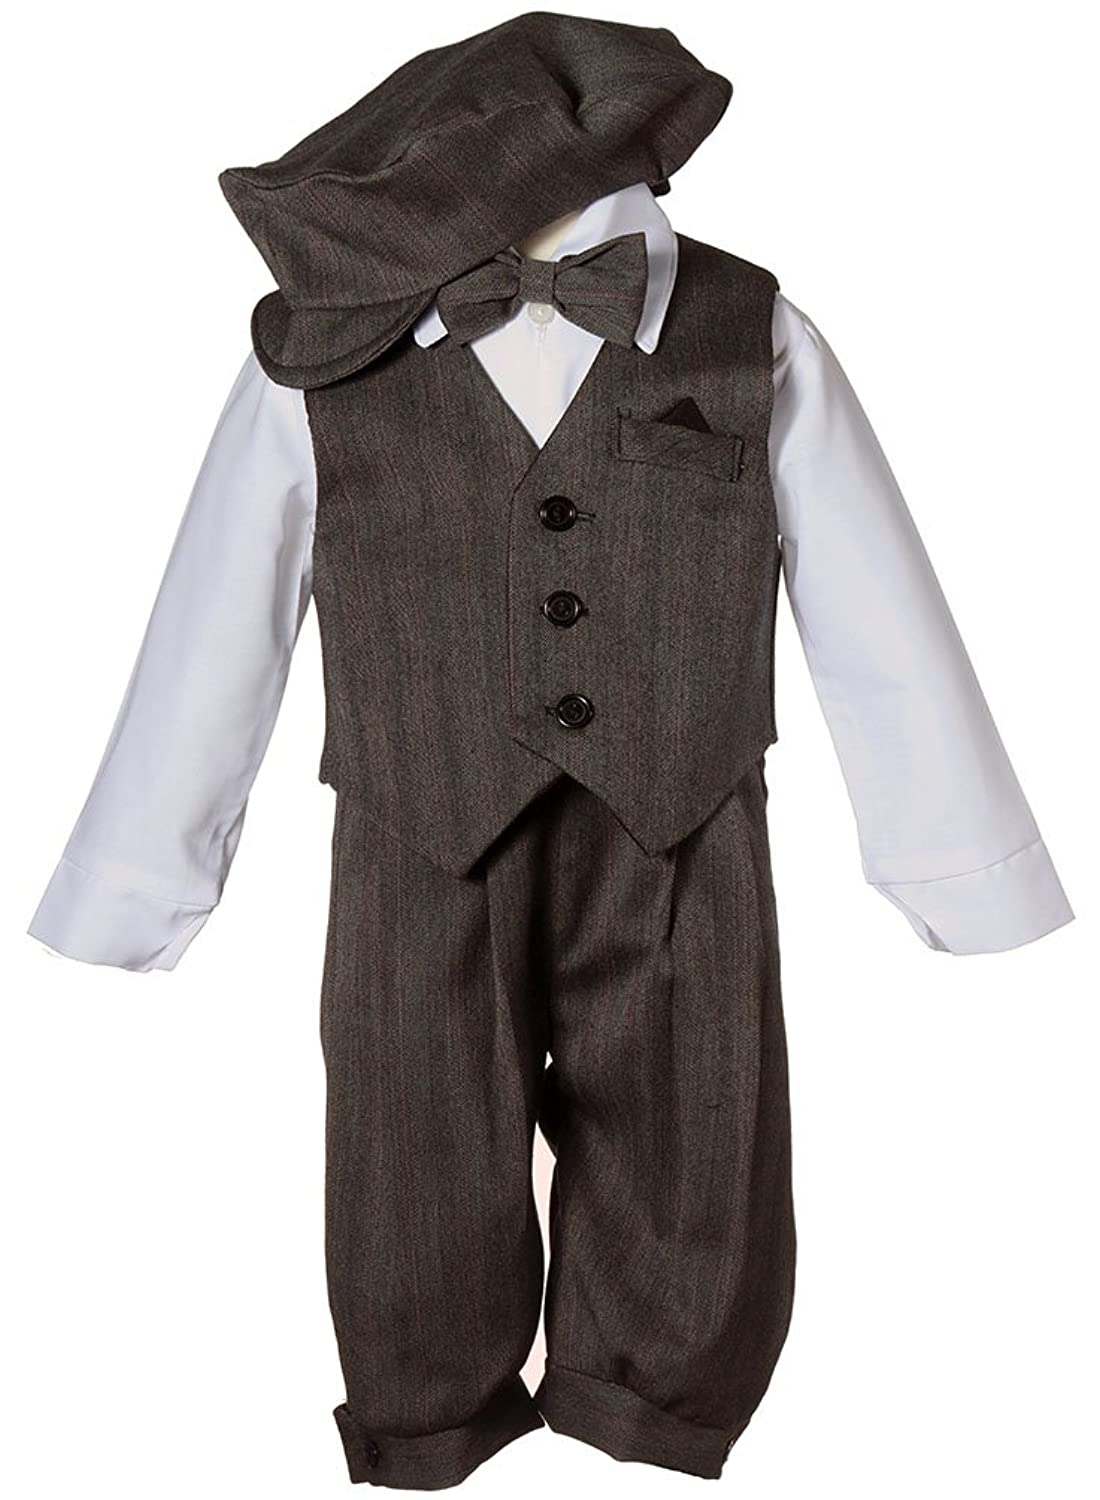 1930s Childrens Fashion: Girls, Boys, Toddler, Baby Costumes Boys Toddler Knicker Set with Vest and Hat - Vintage Grey Stripe $34.95 AT vintagedancer.com